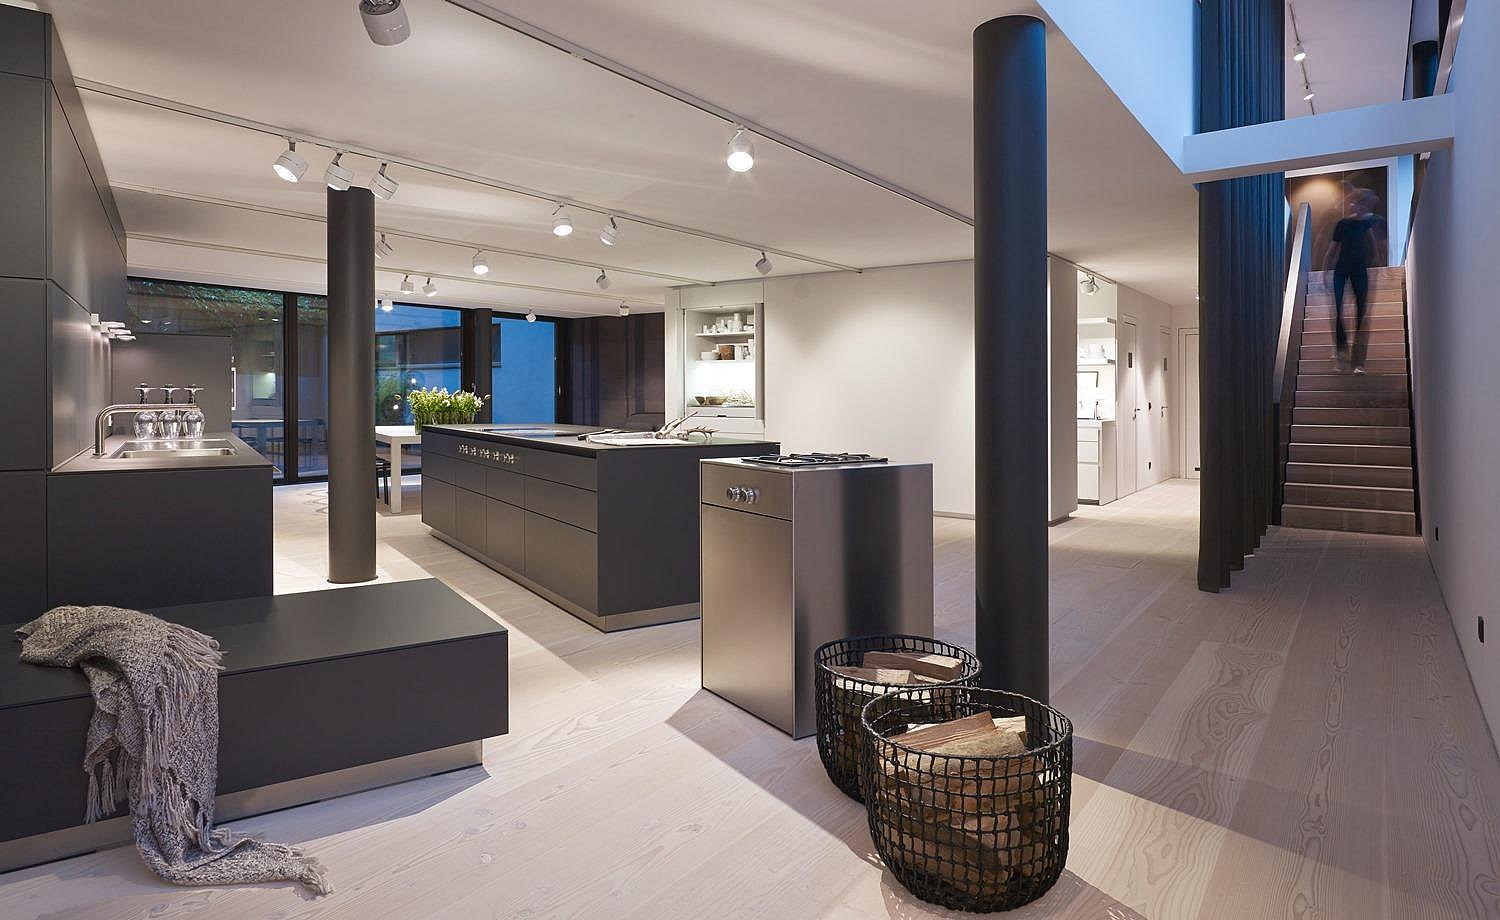 Example of a showroom from the inside: each showroom is individually planned together with bulthaup architects